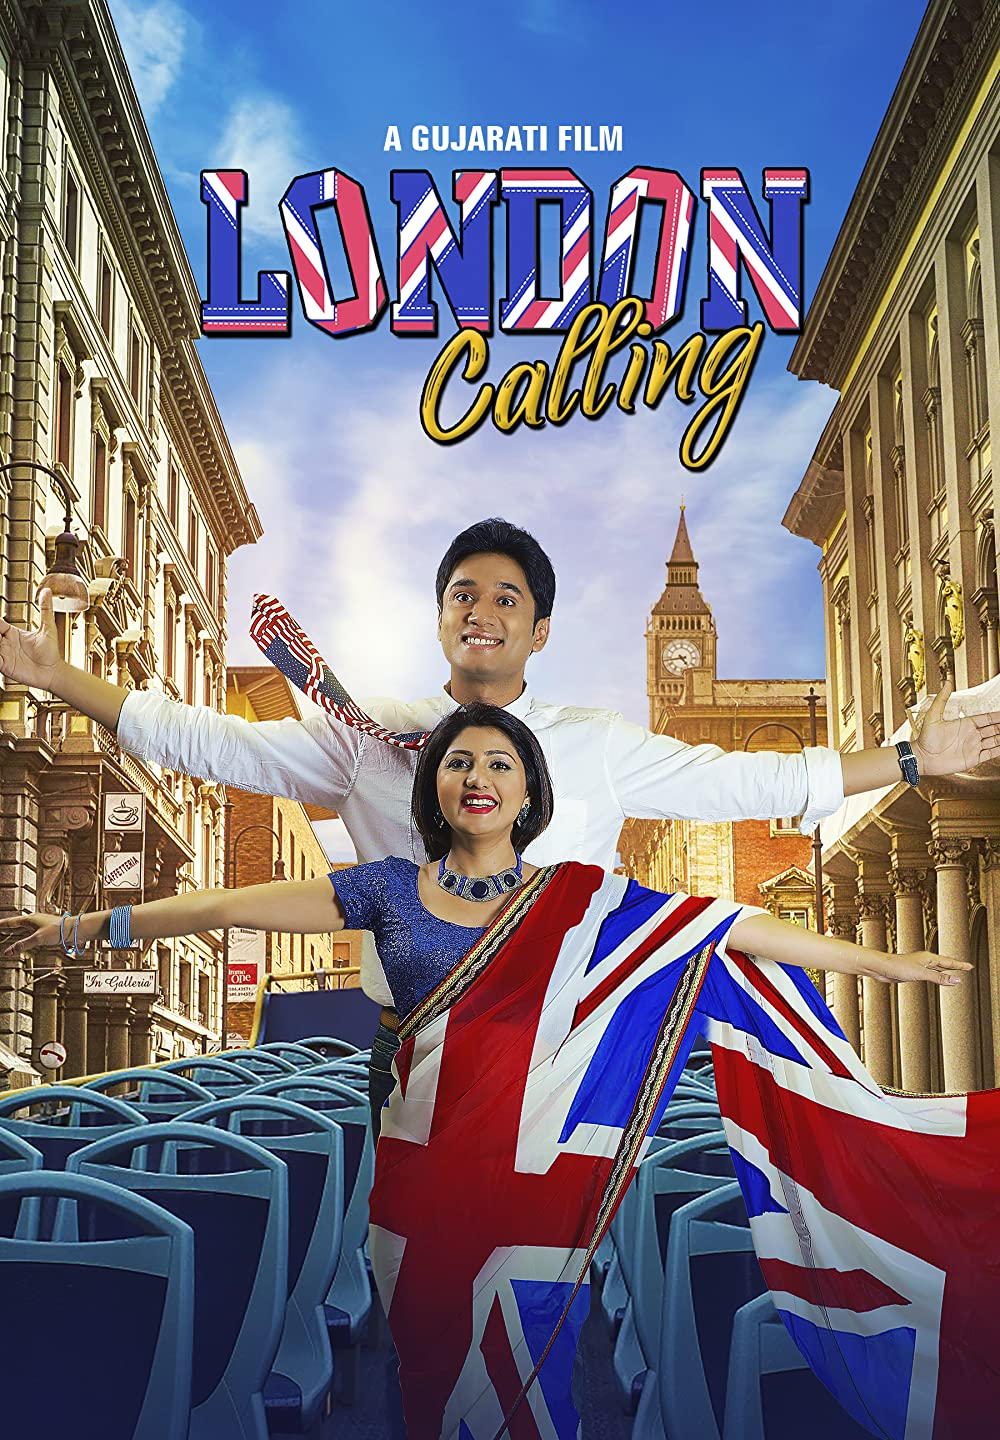 London Calling 2020 Gujrati 1080p HDRip ESubs 1.82GB Download